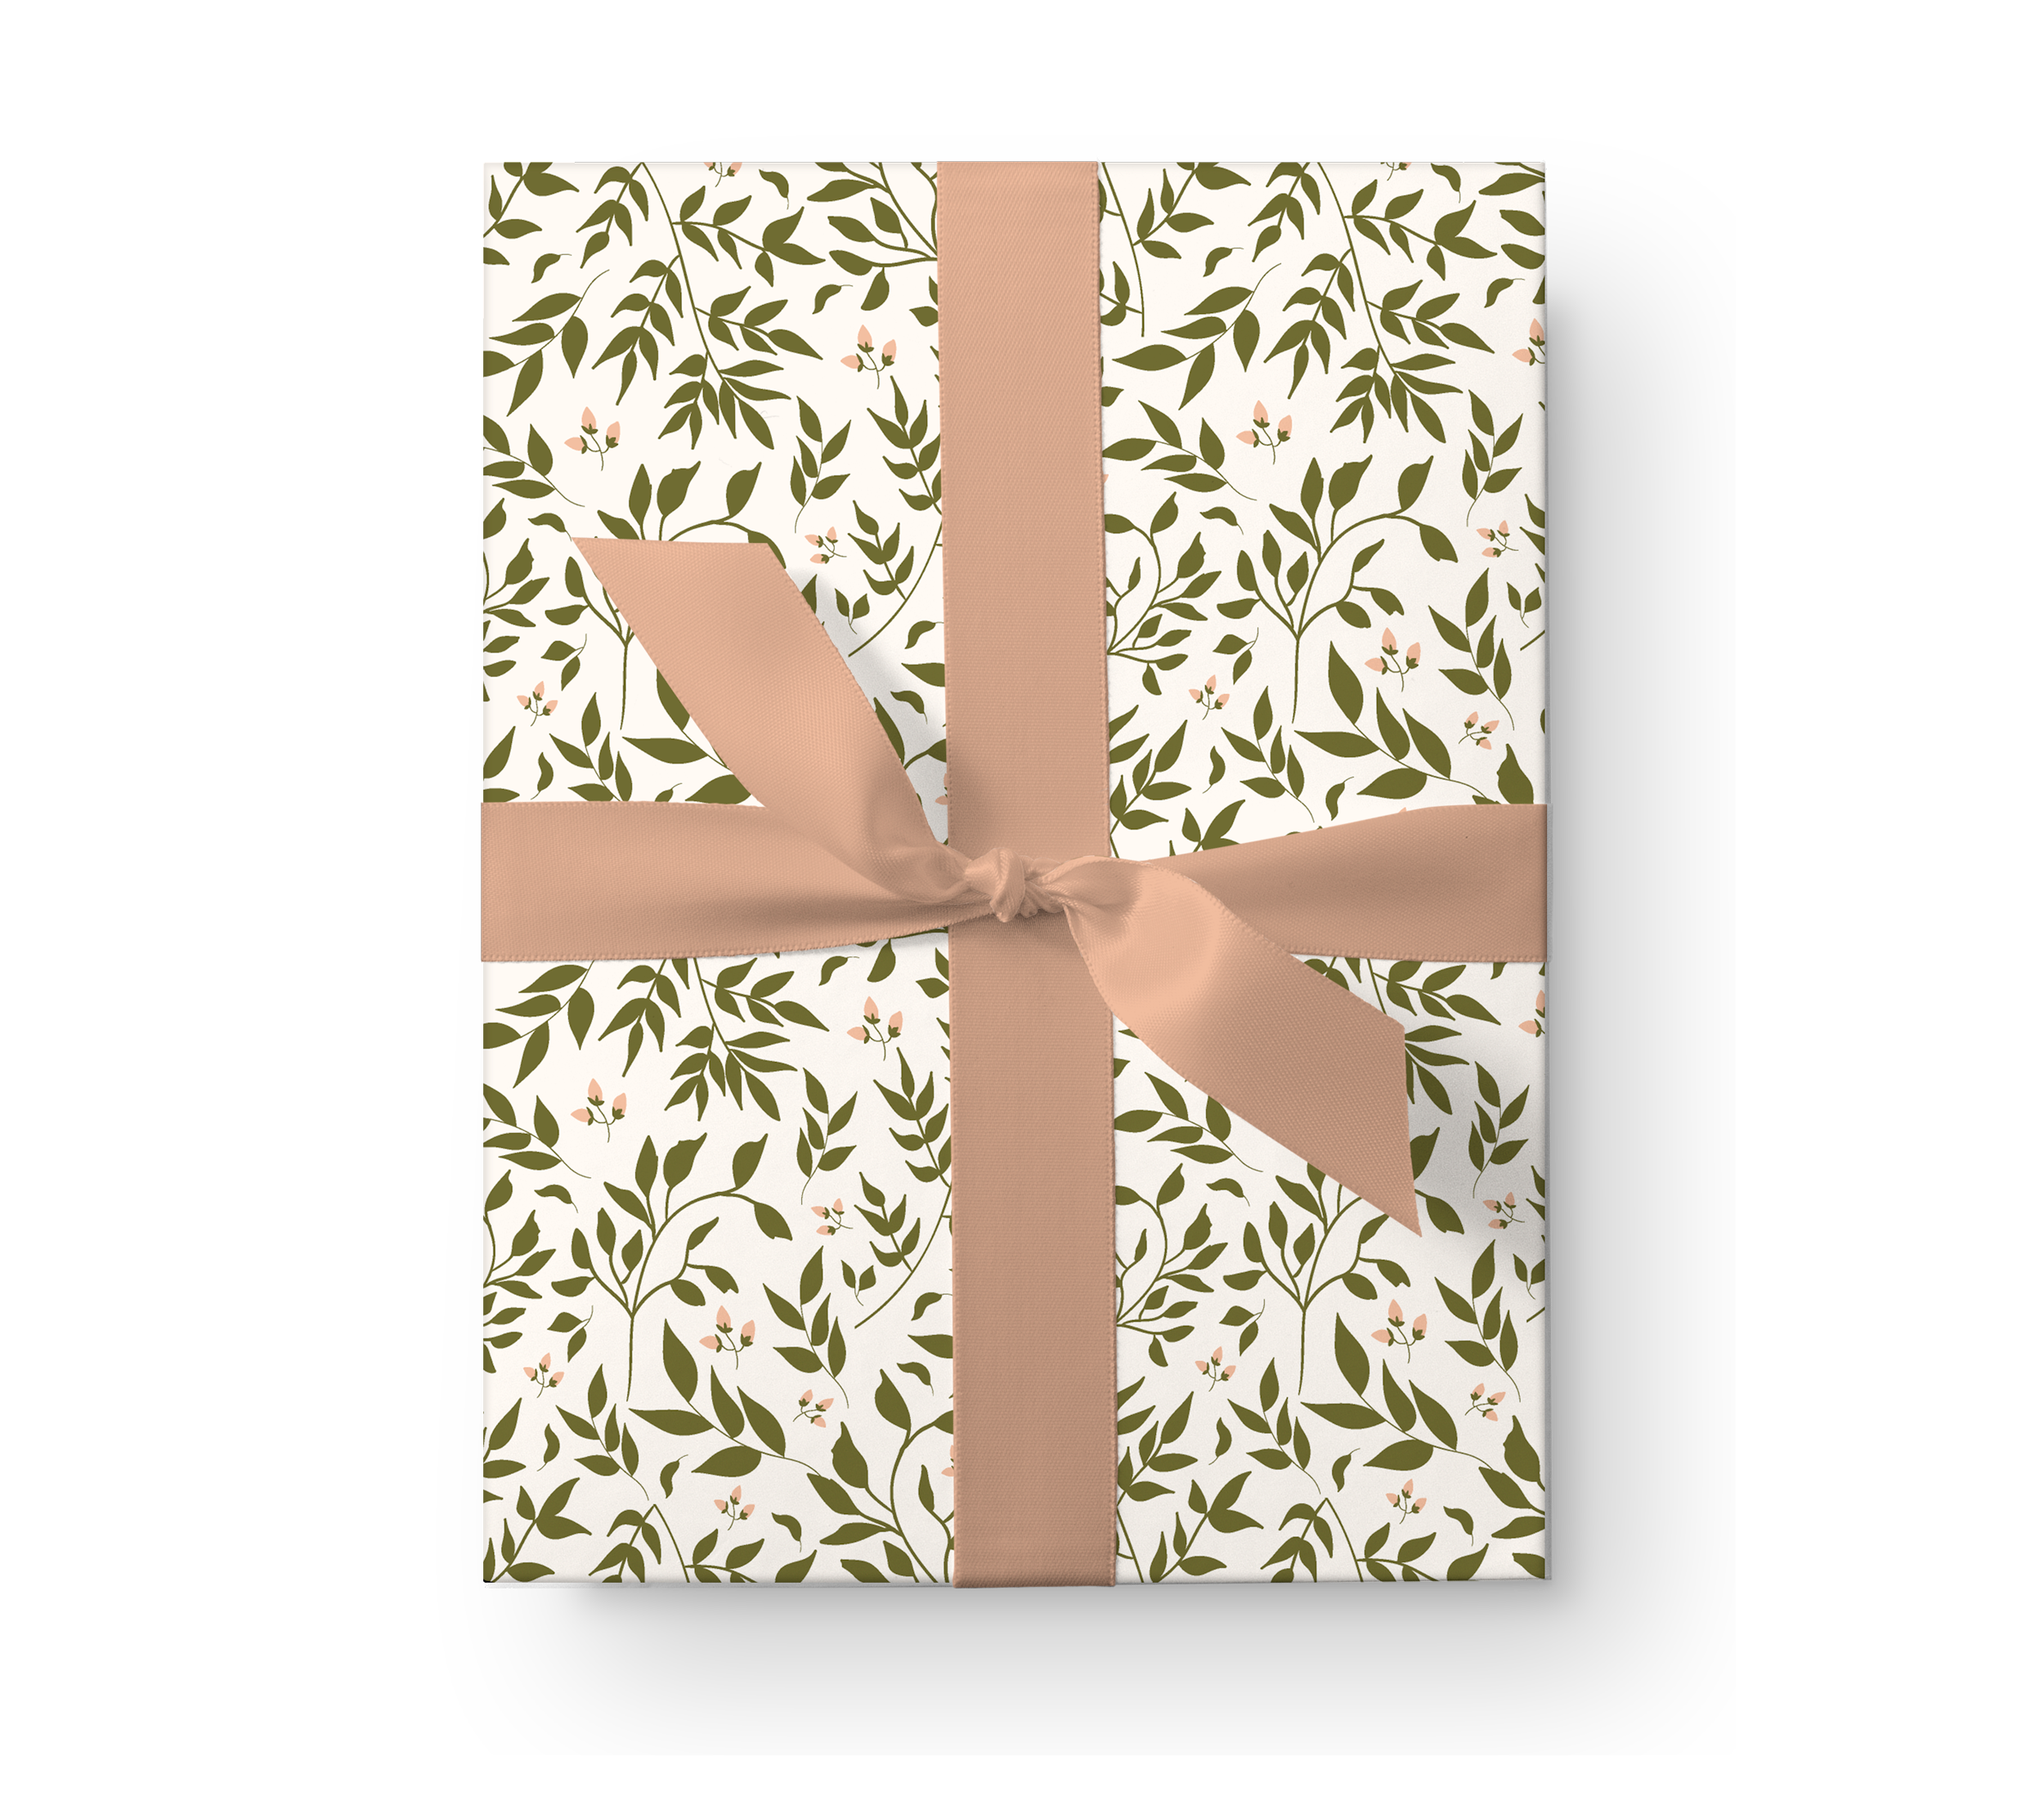 Illustrated wrapping paper gift box with a lovely leafy vines foliage pattern on a cream background.